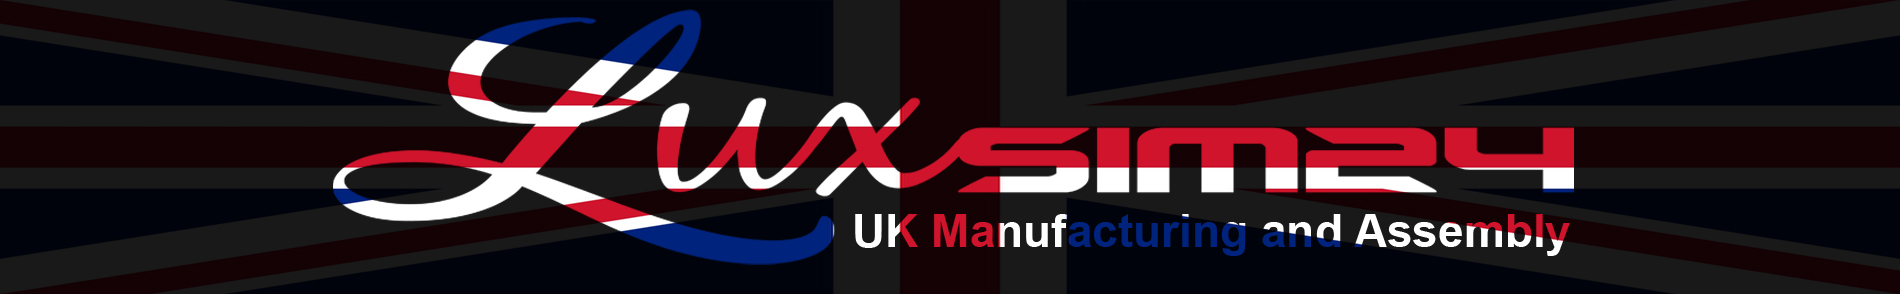 UK Manufacturing and Assembly